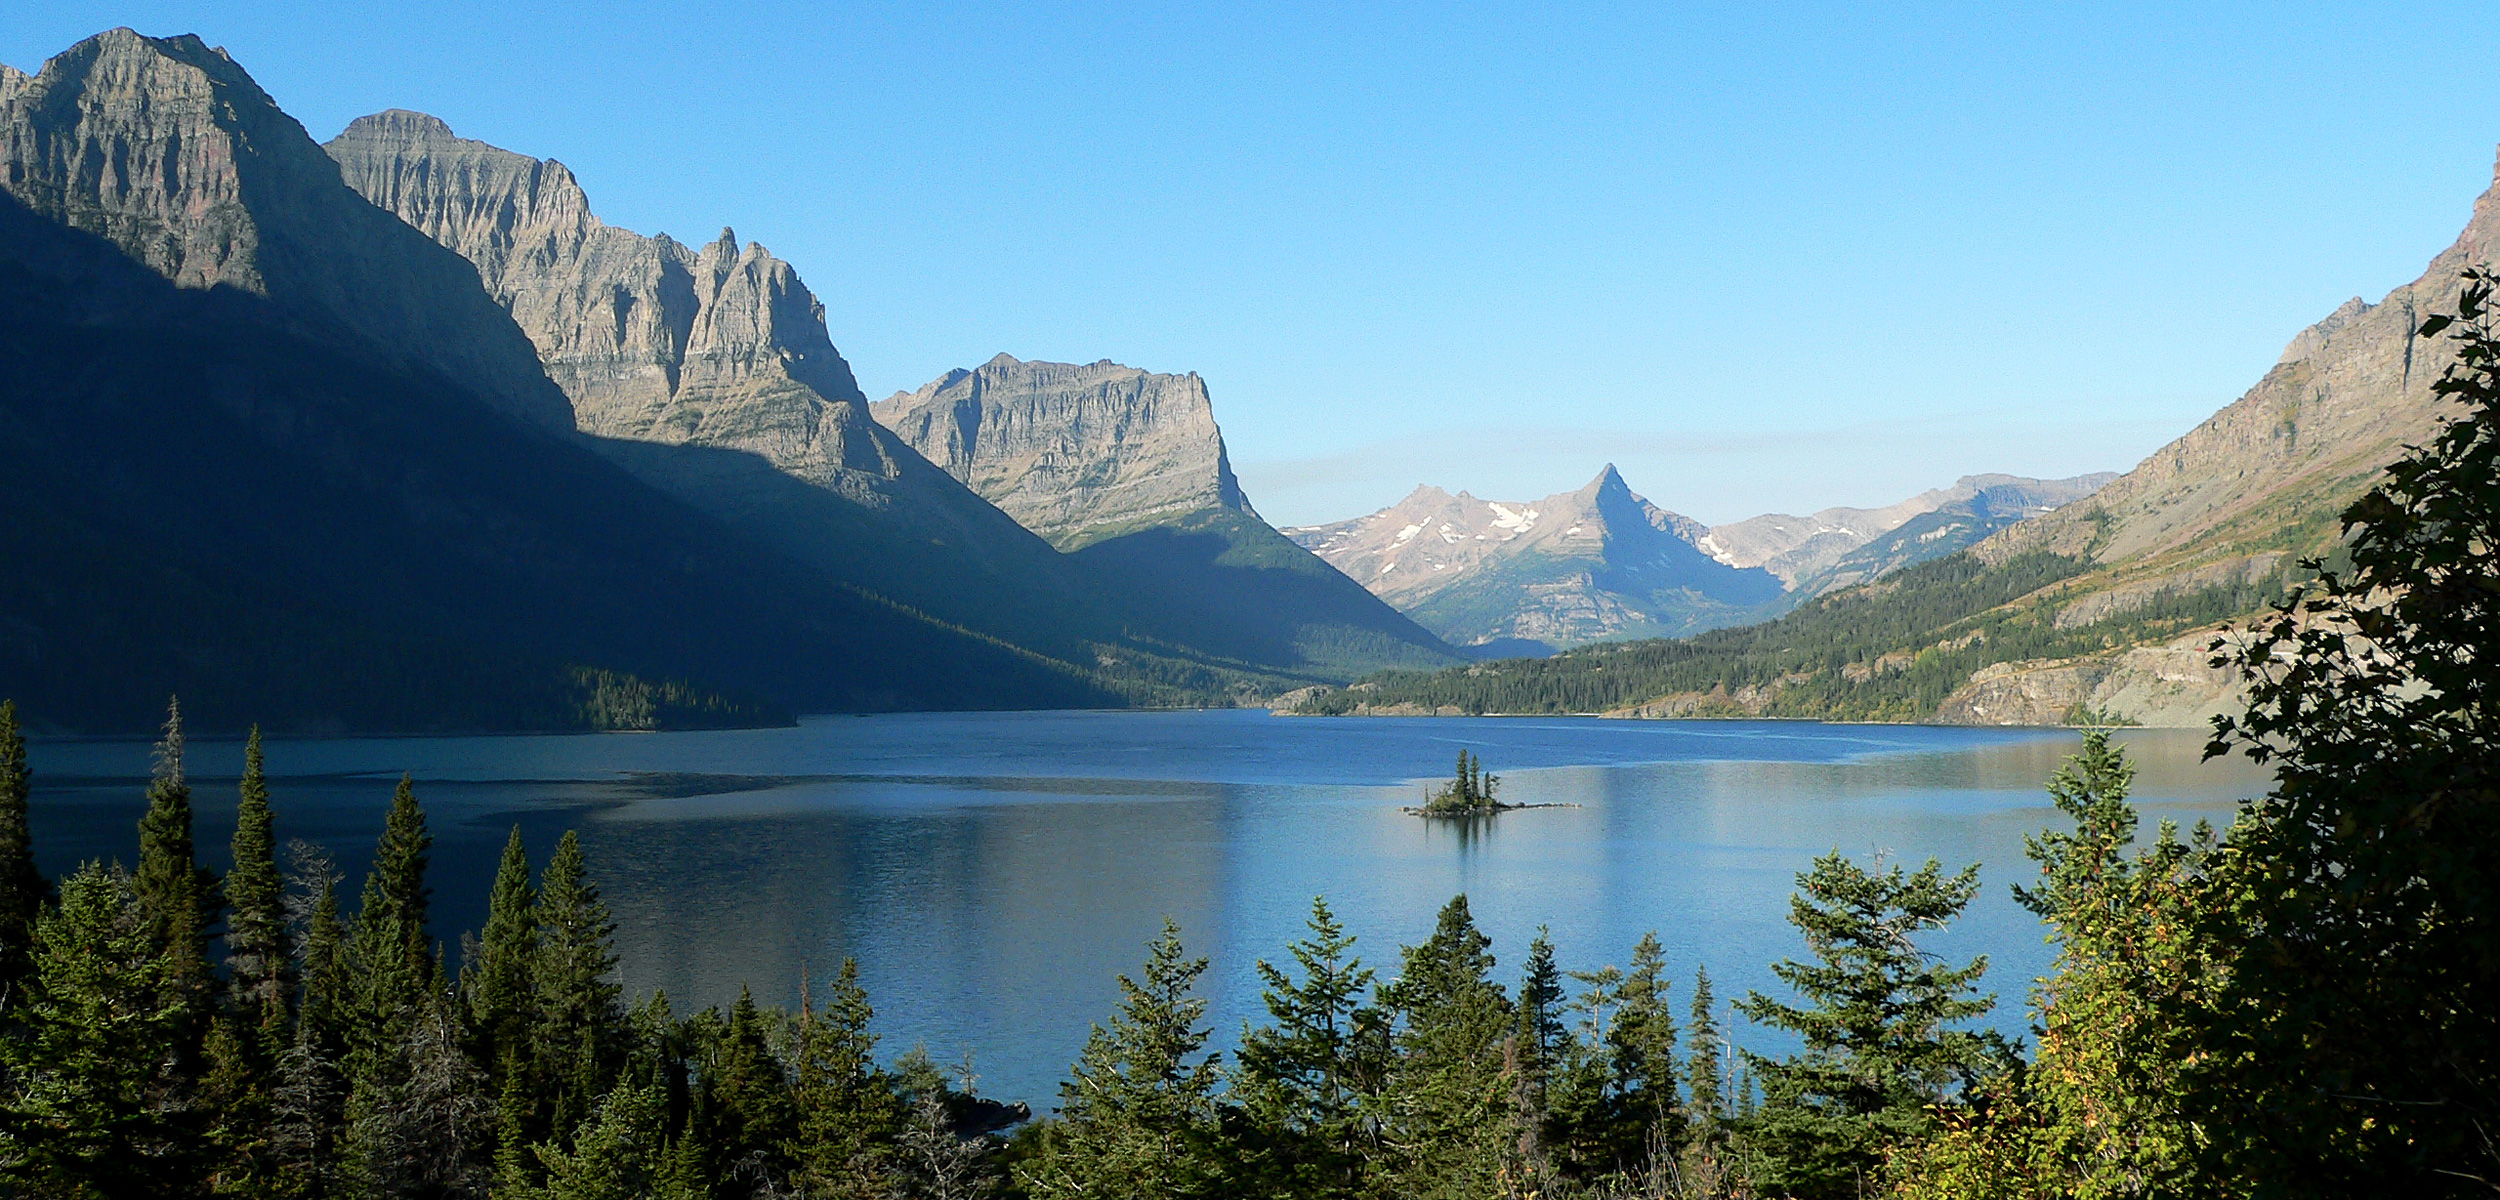 The upper end of St. Mary Lake and Wild Goose Island, Glacier National Park, Montana. Photo taken from Going-to-the-Sun Road by Ken Thomas on September 11, 2006.